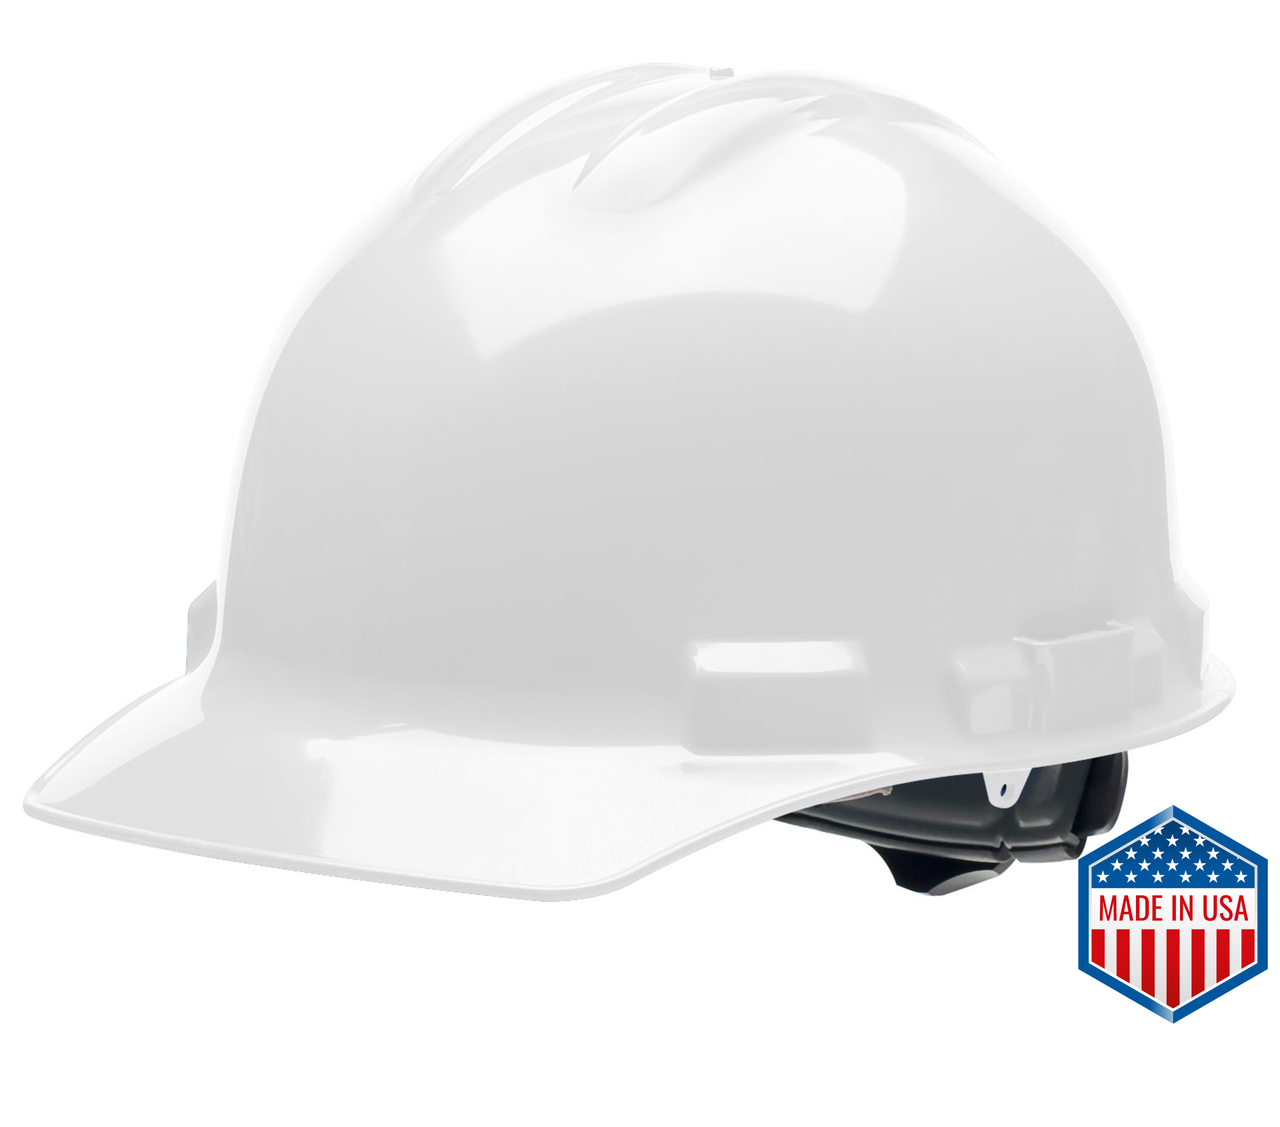 White Hard Hat Helmet Style Made in the USA